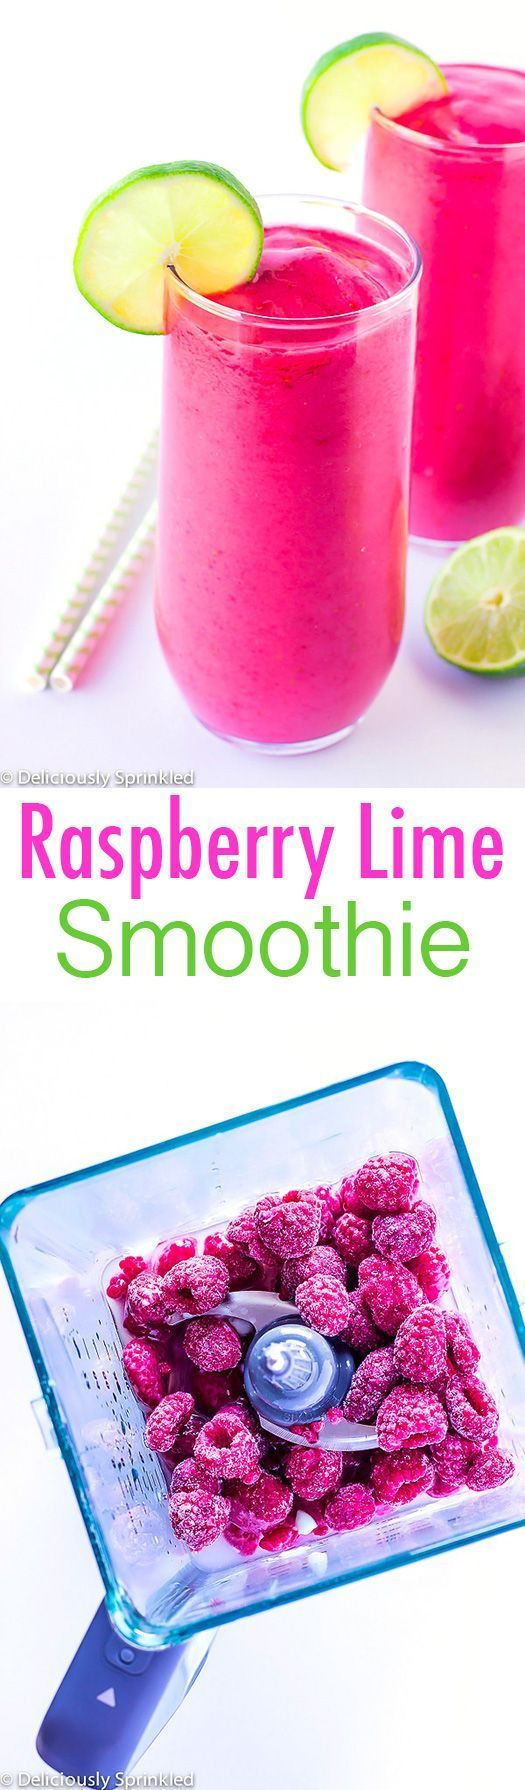 Raspberry Lime Smoothie   Want to detox? Drink CUTEA with 10% off using coupon code 'Pinterest10' on www.getcutea.com